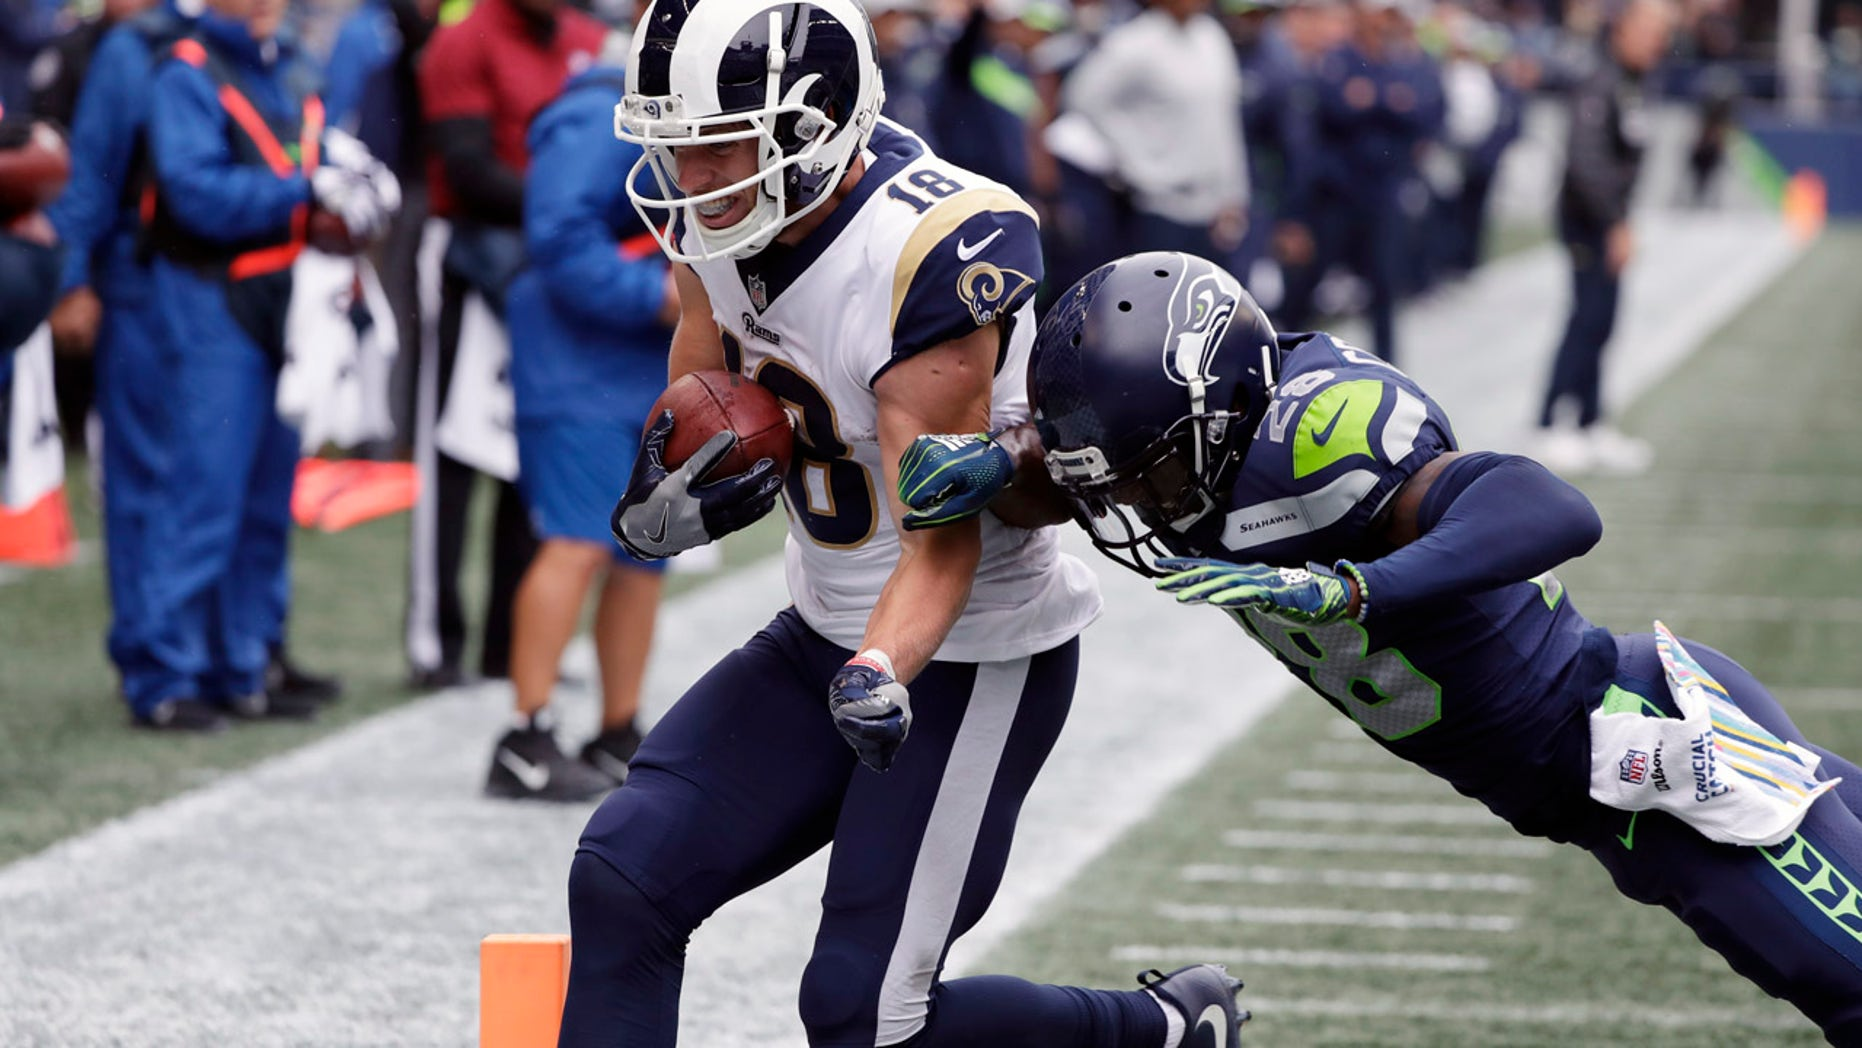 Los Angeles Rams wide receiver Cooper Kupp (18), seen here in last week's game, was carted off the field after a tackle Sunday.